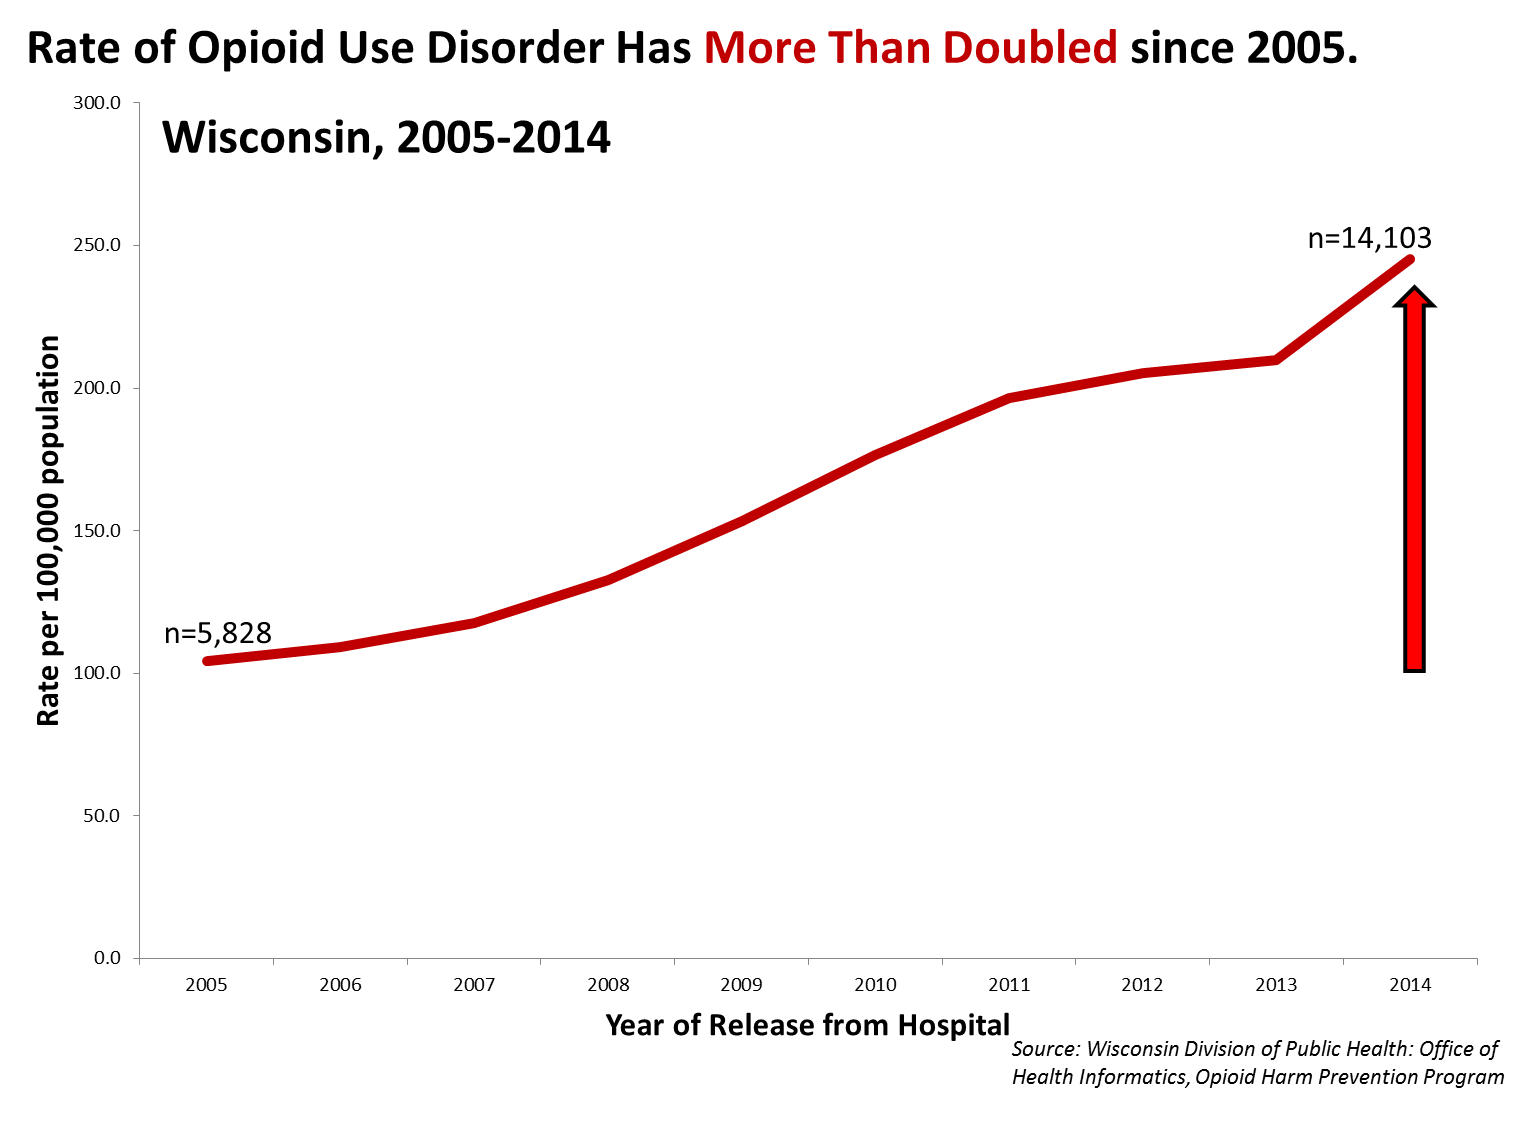 Rate of opioid use disorder has more than doubled since 2005